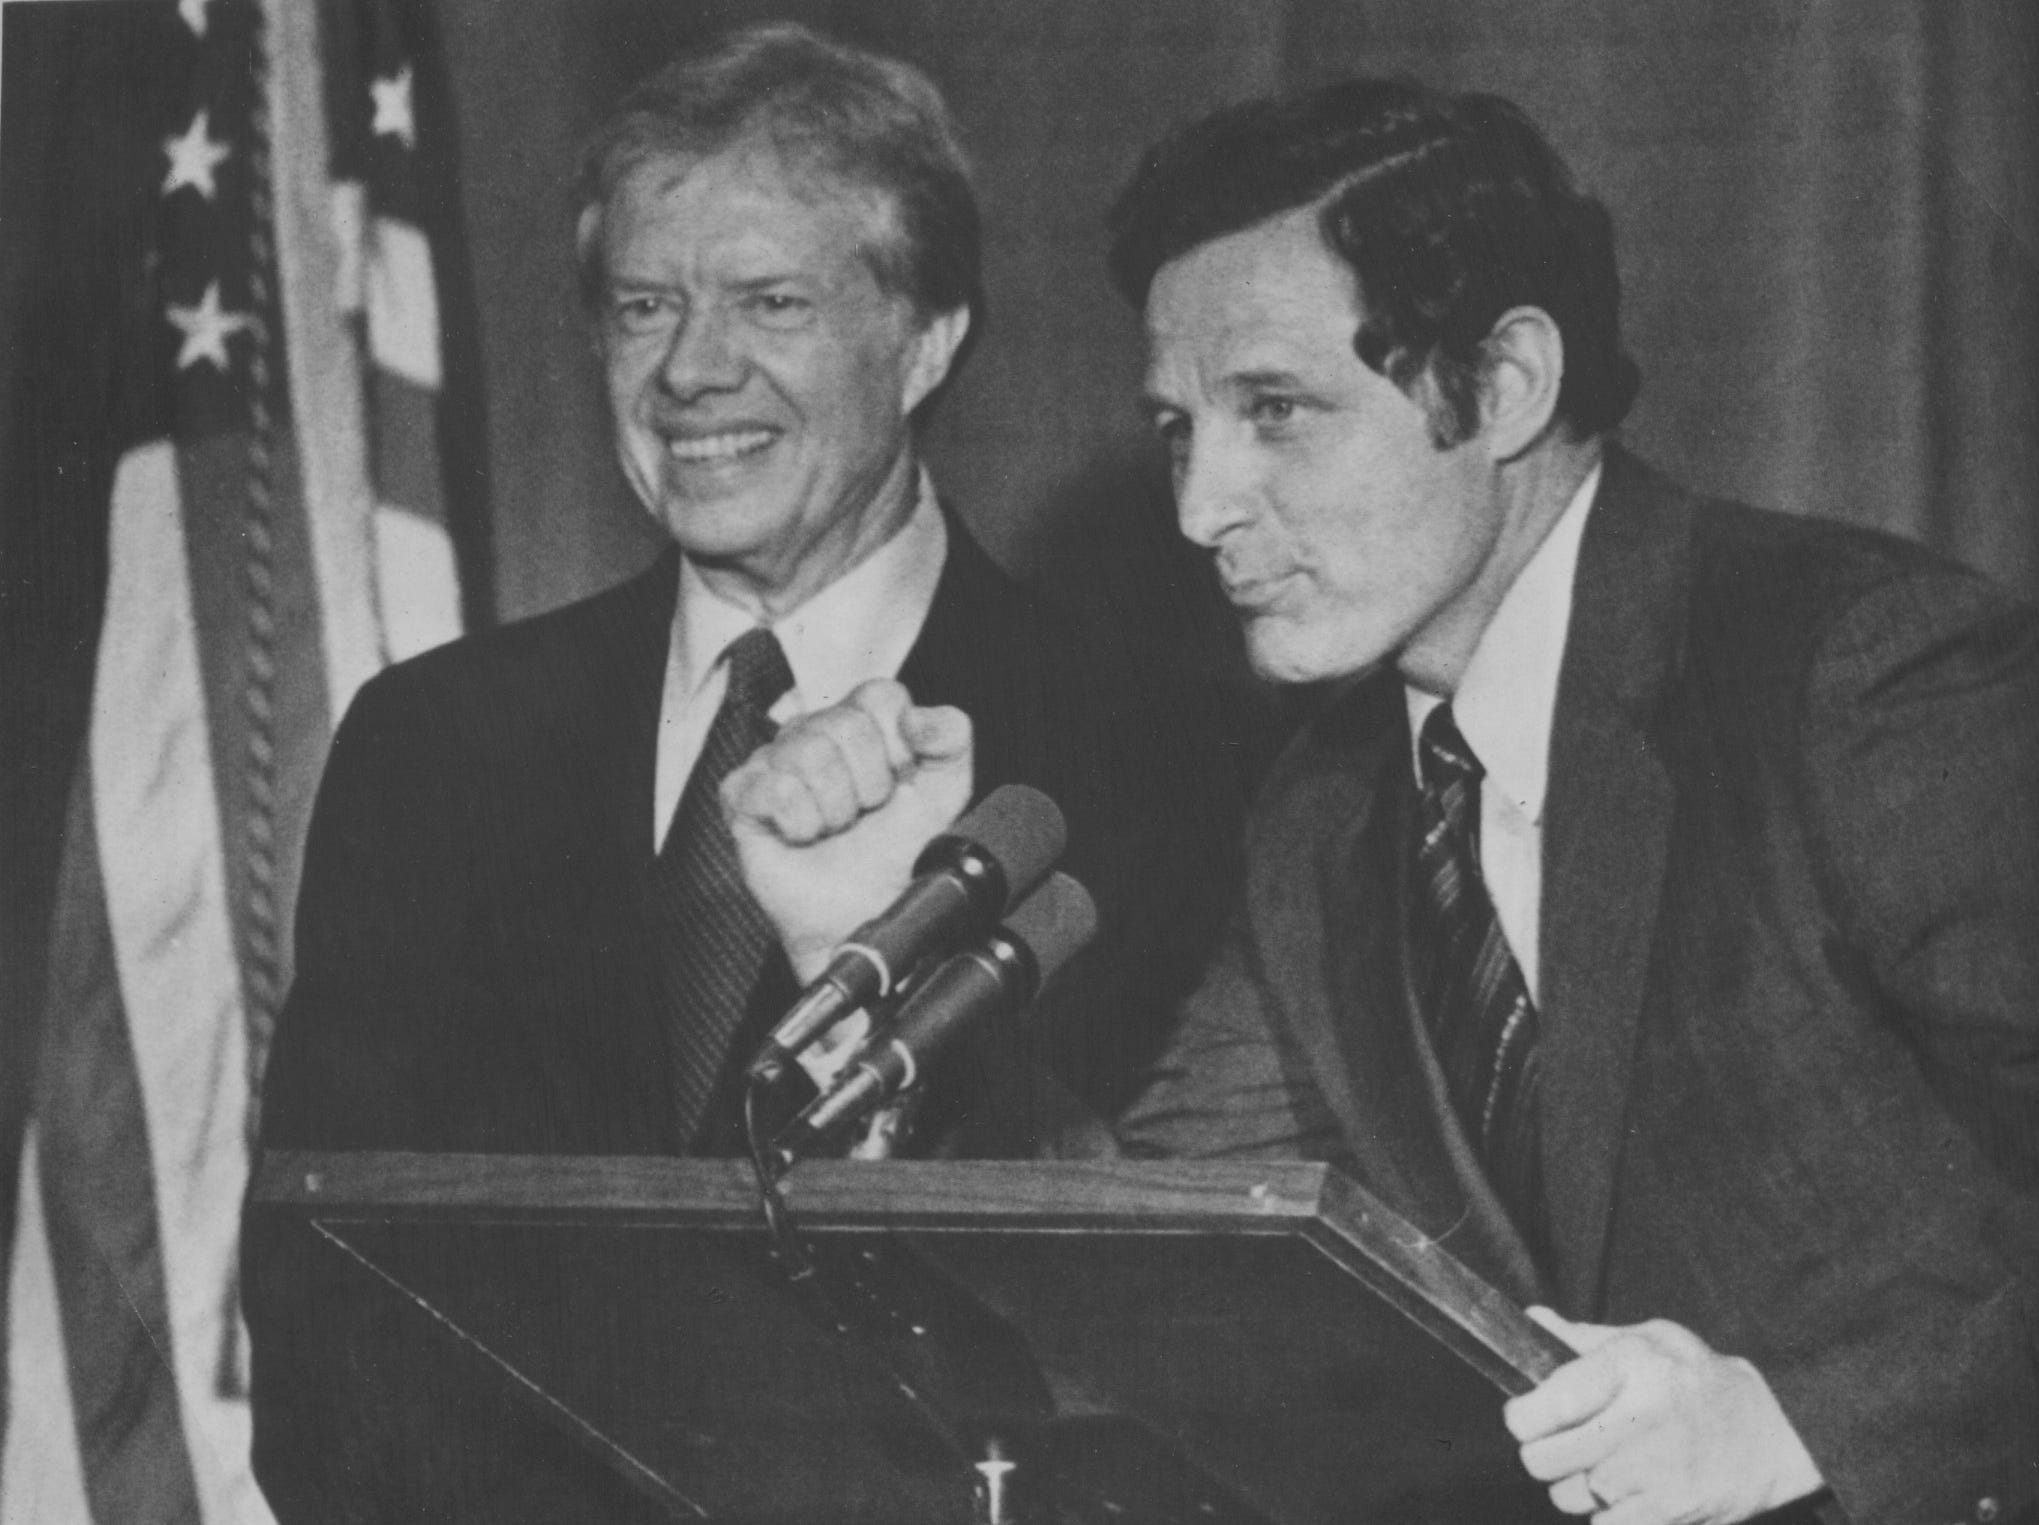 Senator Birch Bayh plugs for President Jimmy Carter's re-election on June 4, 1979.